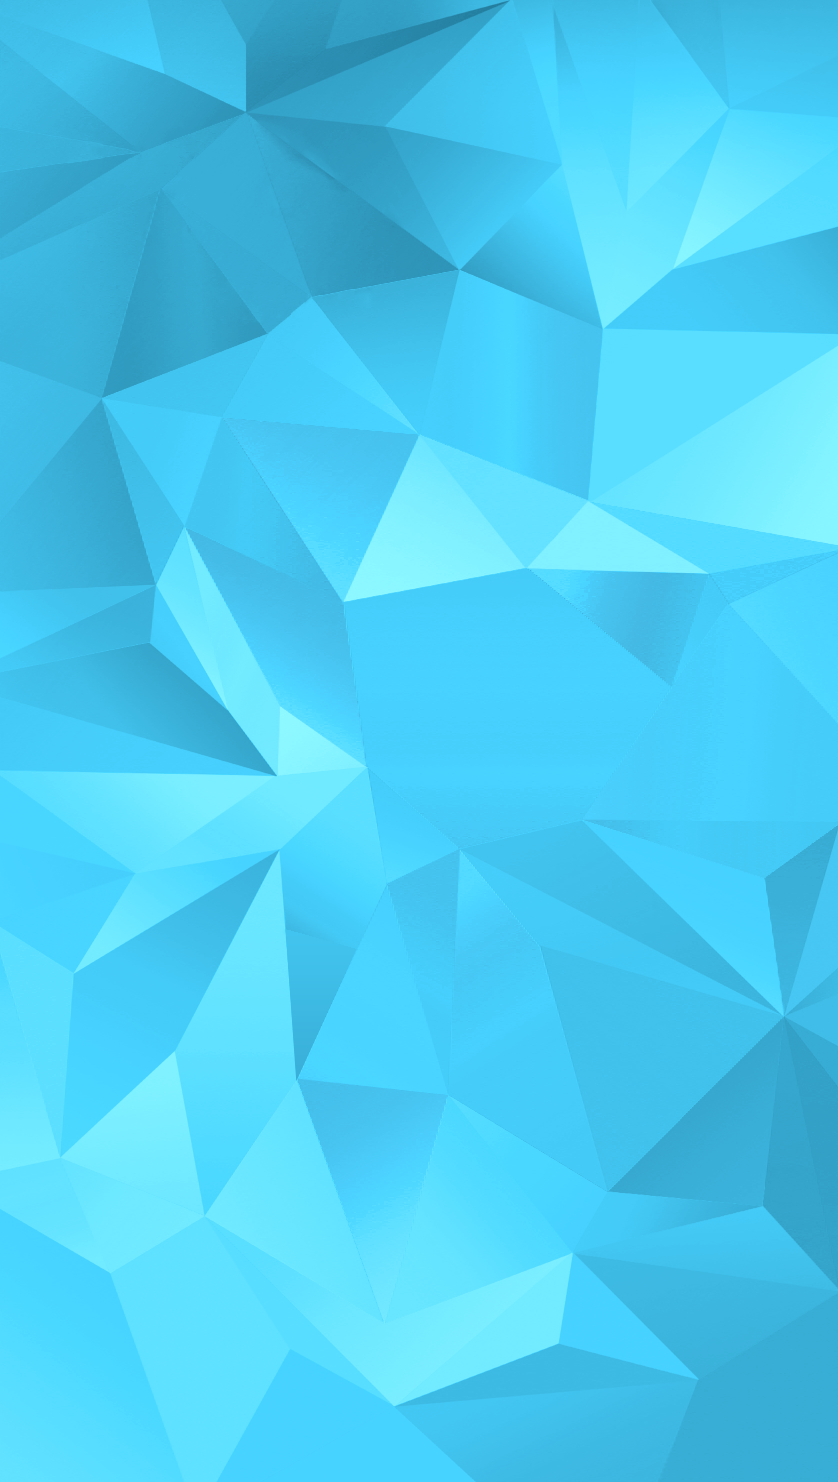 Samsung-Galaxy-S5-Wallpapers-Blue